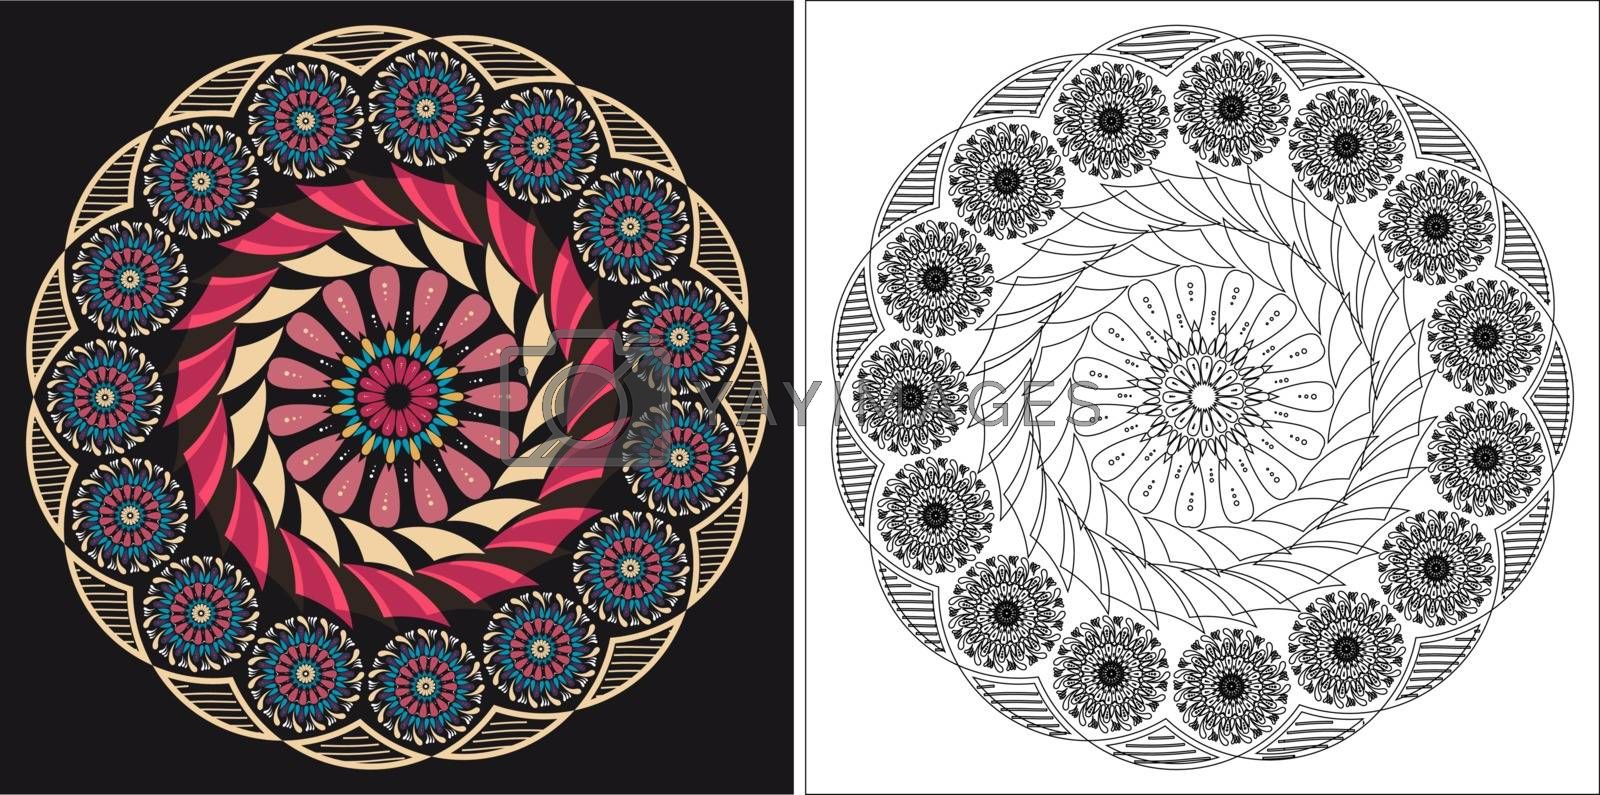 Coloring book template for adults and kids. Cute mandala cartoon vector flower